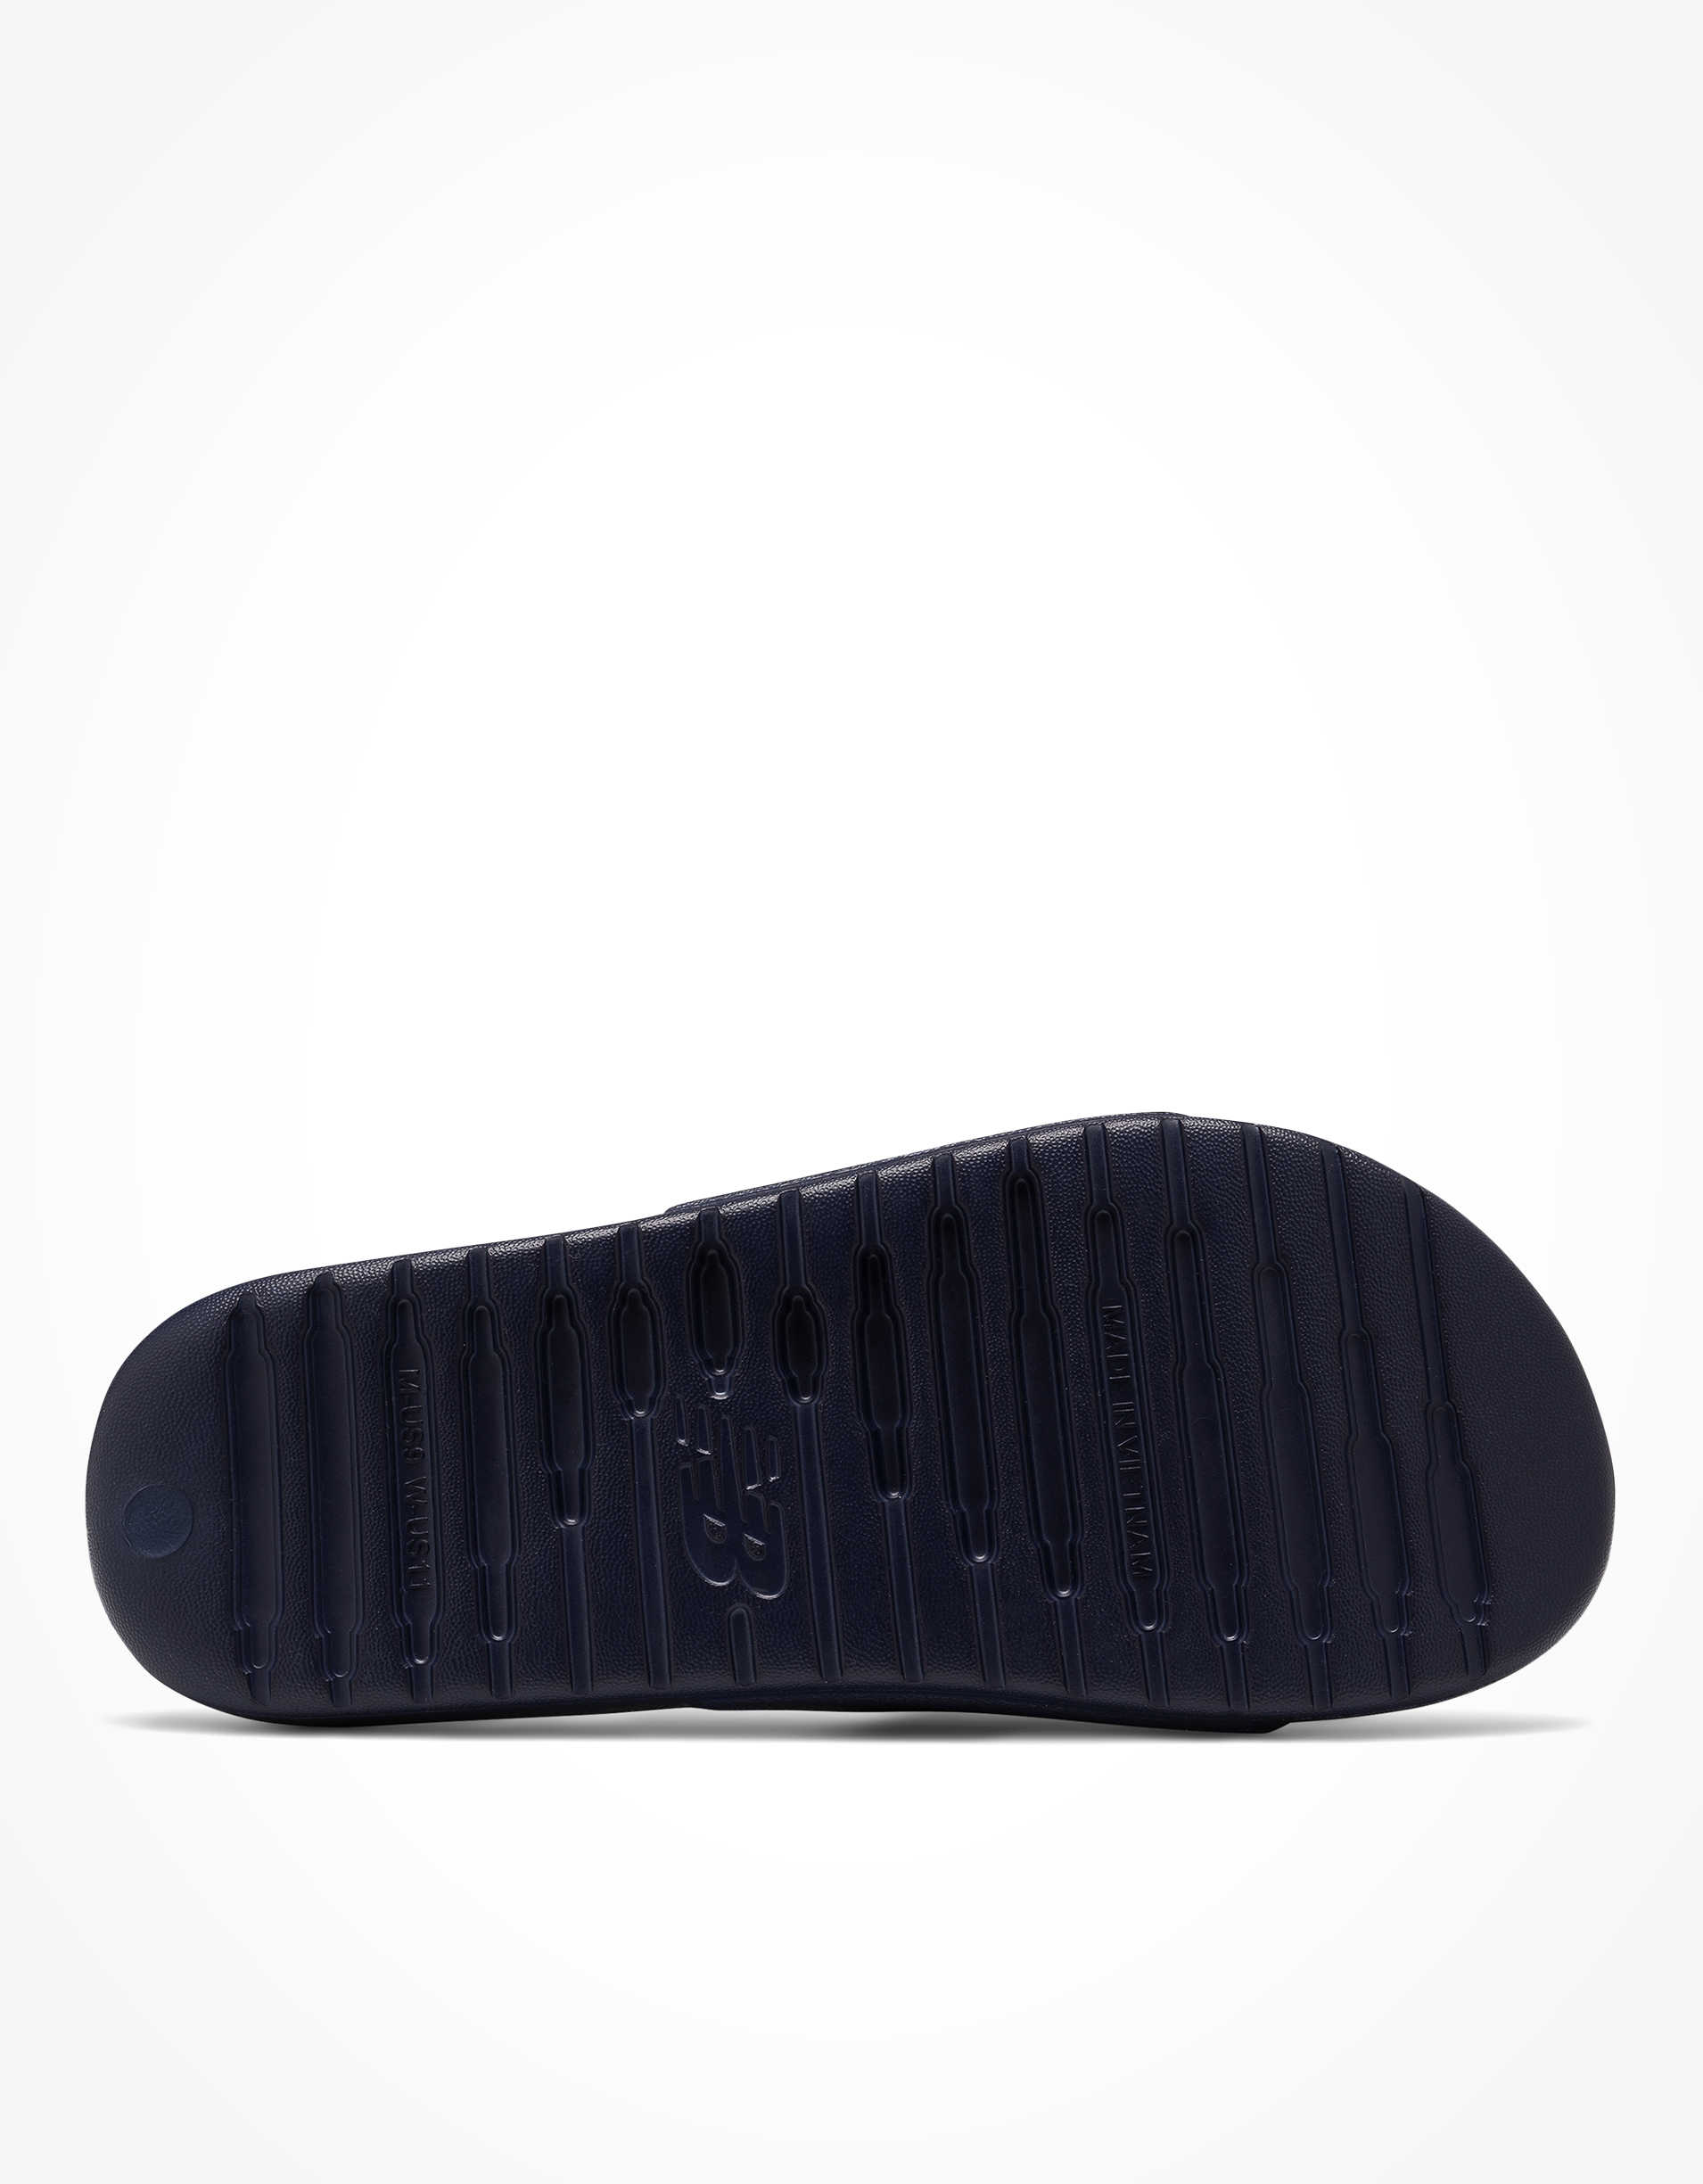 New Balance 100 Slide Sandal